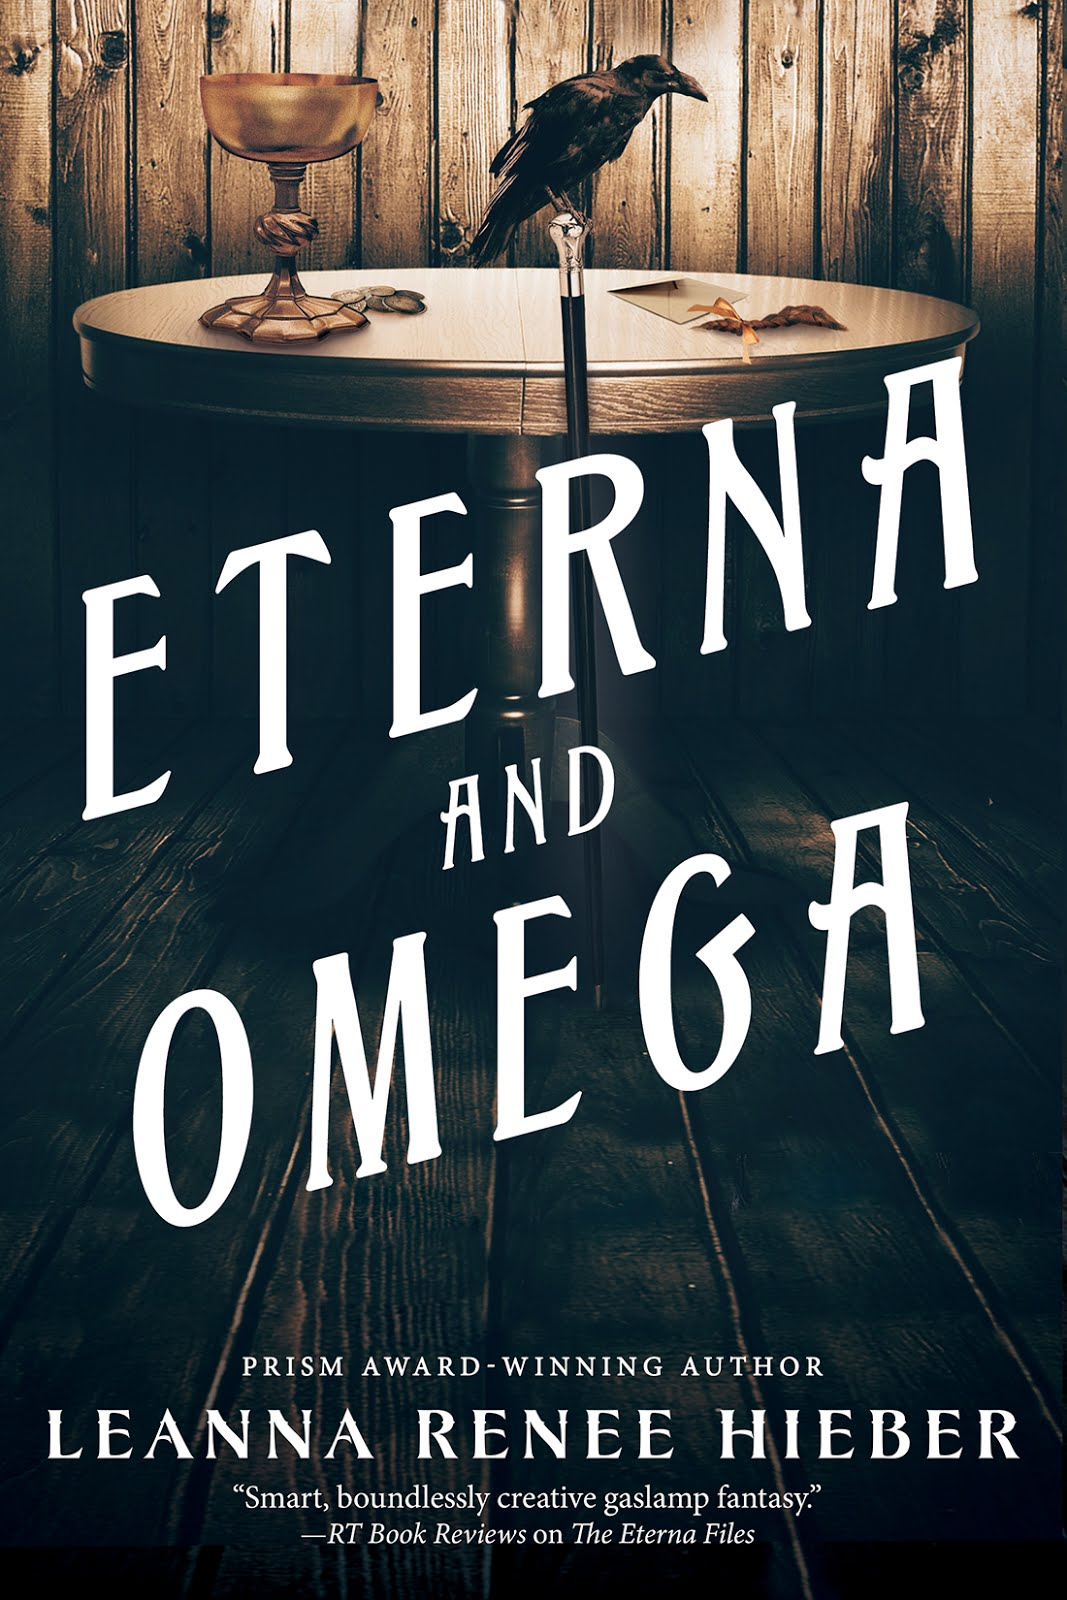 ETERNA AND OMEGA (Eterna Files 2)